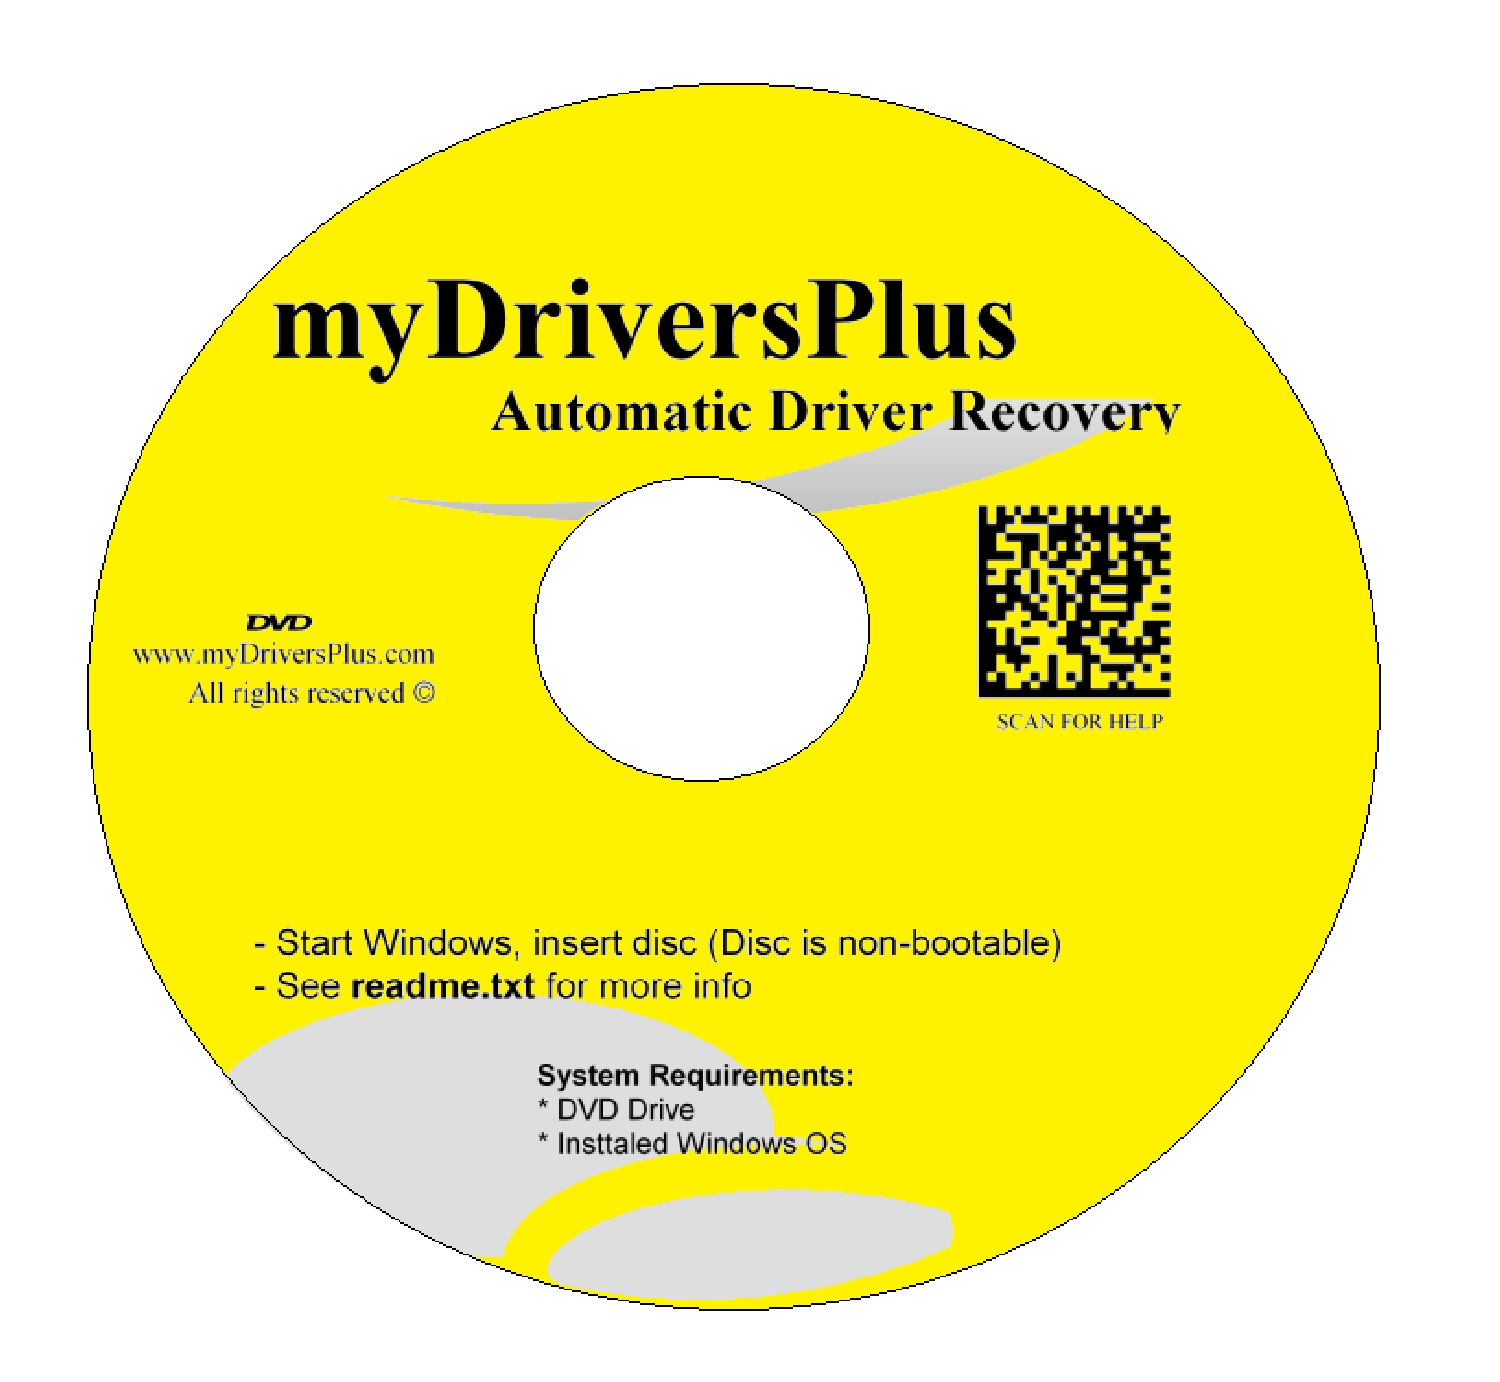 Windows XP Universal Drivers Recovery Restore Resource Utilities Software with Automatic One-Click Installer Unattended for Internet, Wi-Fi, Ethernet, Video, Sound, Audio, USB, Devices, Chipset ...(D